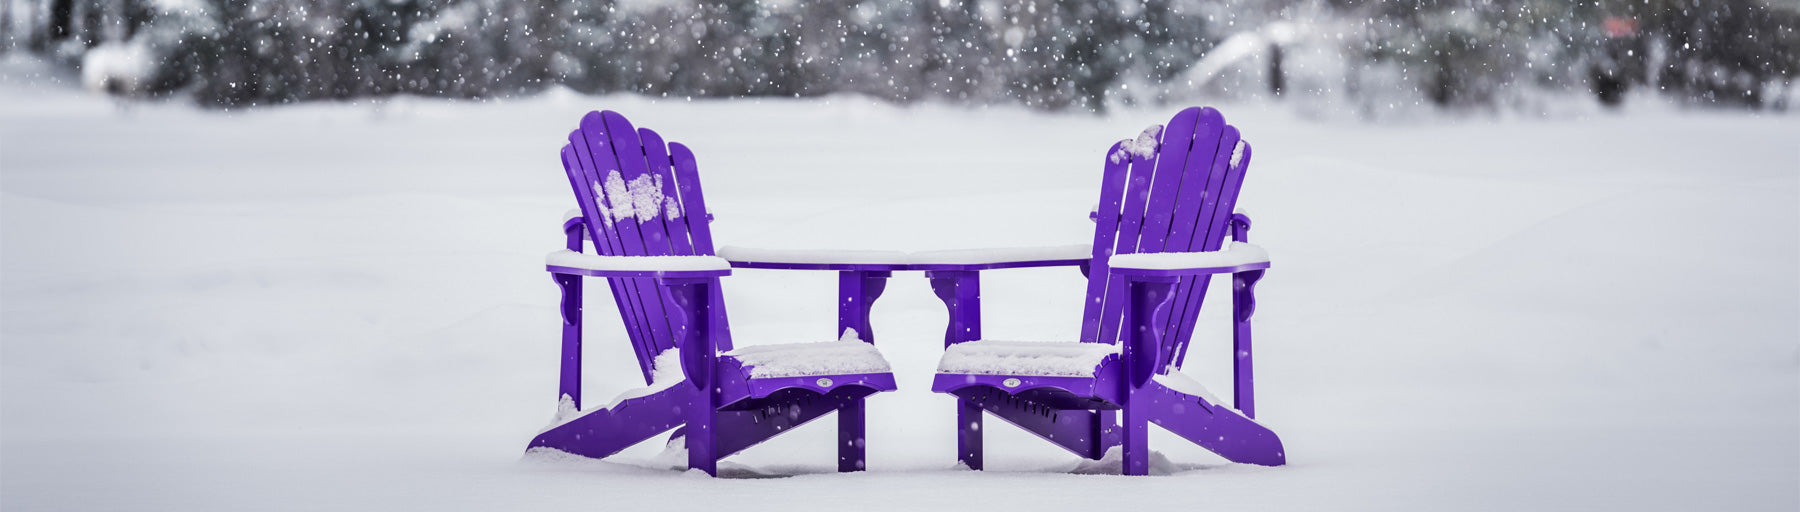 two purple adirondack chairs in snow covered yard